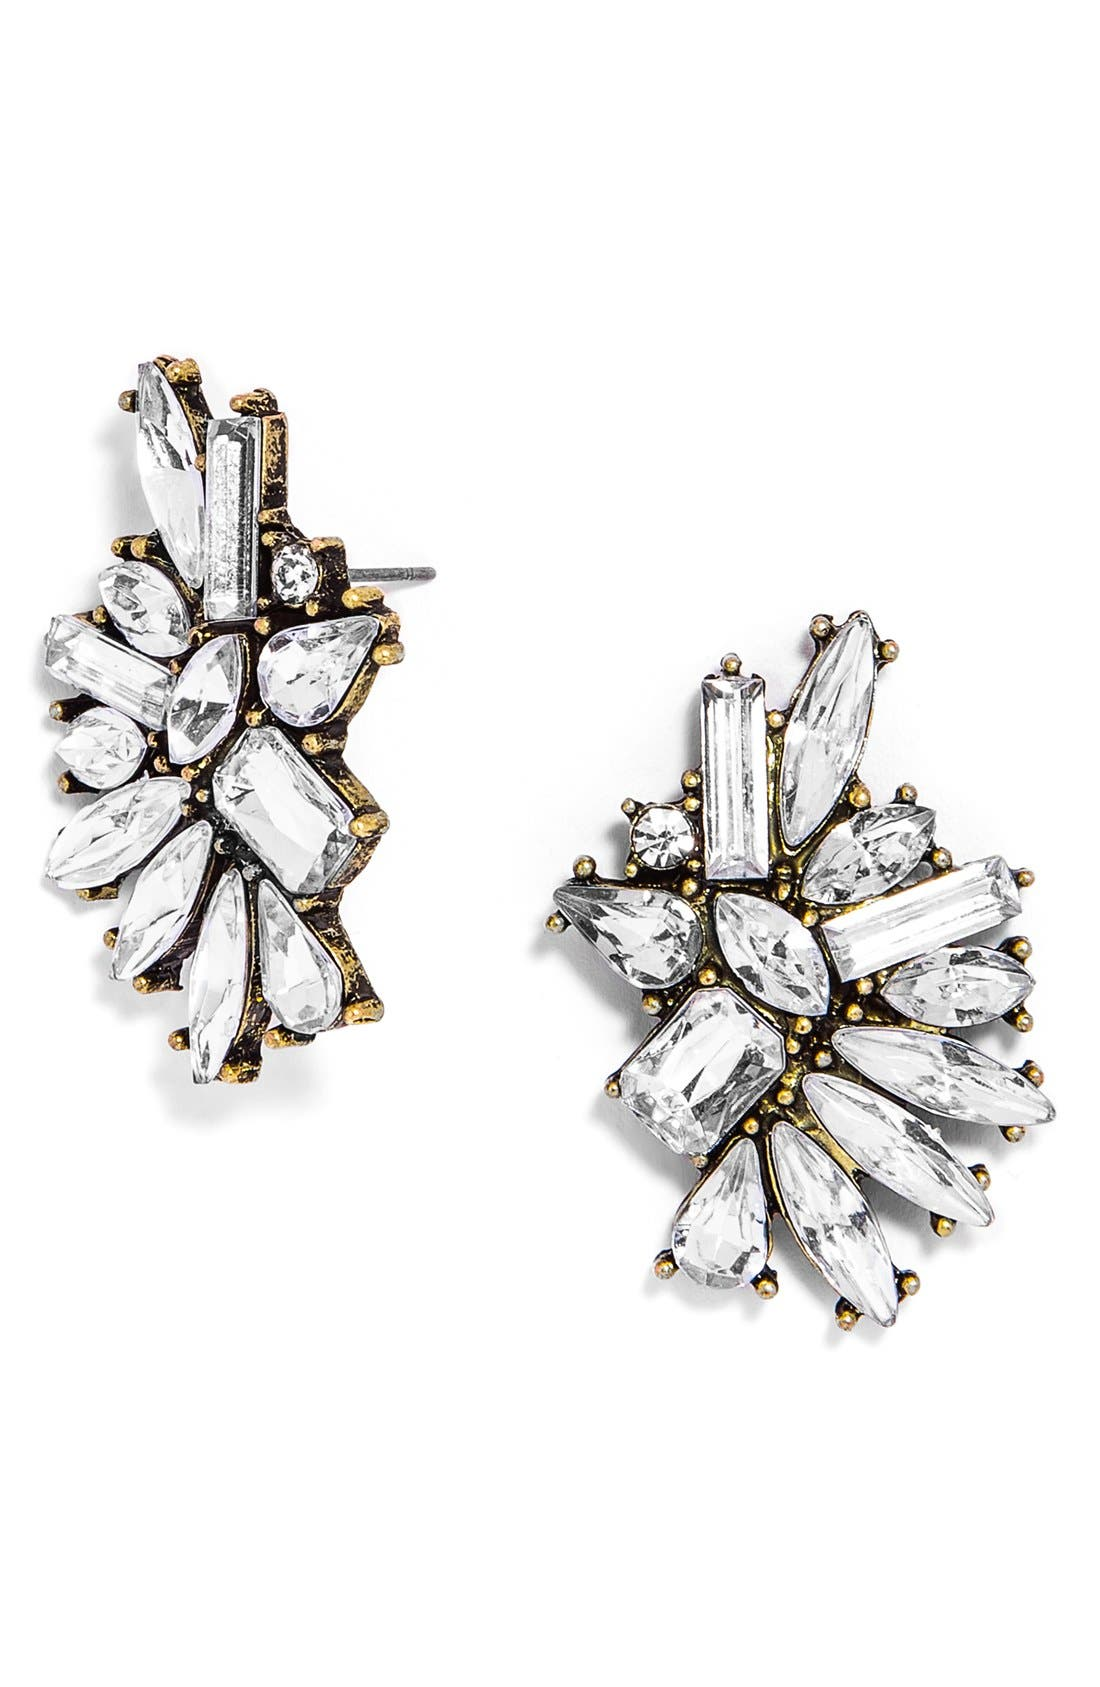 'Crystal Dolores' Statement Stud Earrings,                         Main,                         color, Antique Gold/ Clear